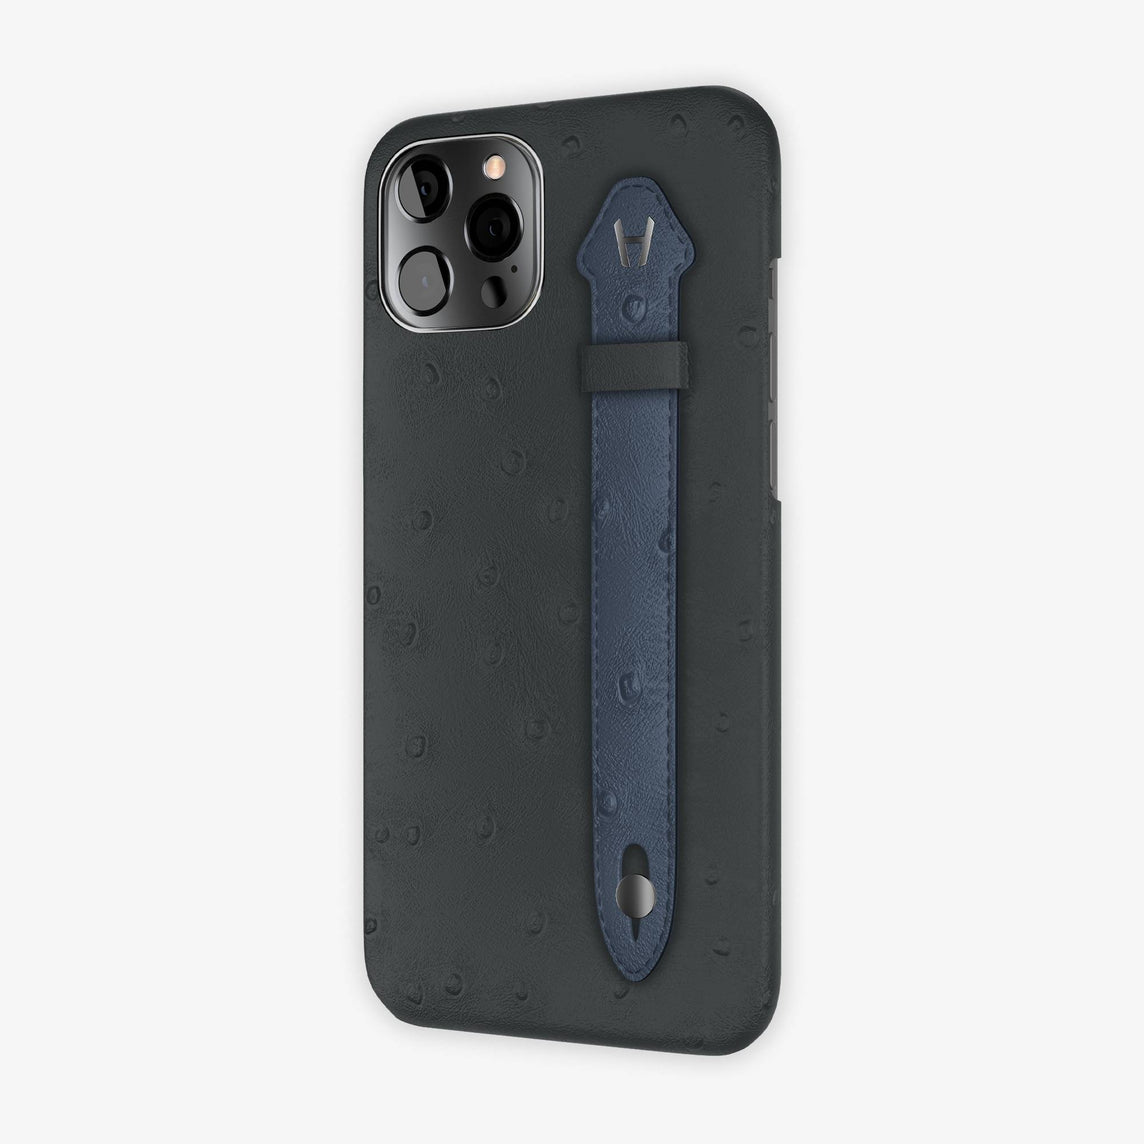 Ostrich Side Finger Case iPhone 12 Pro Max | Anthracite/Navy Blue - Black